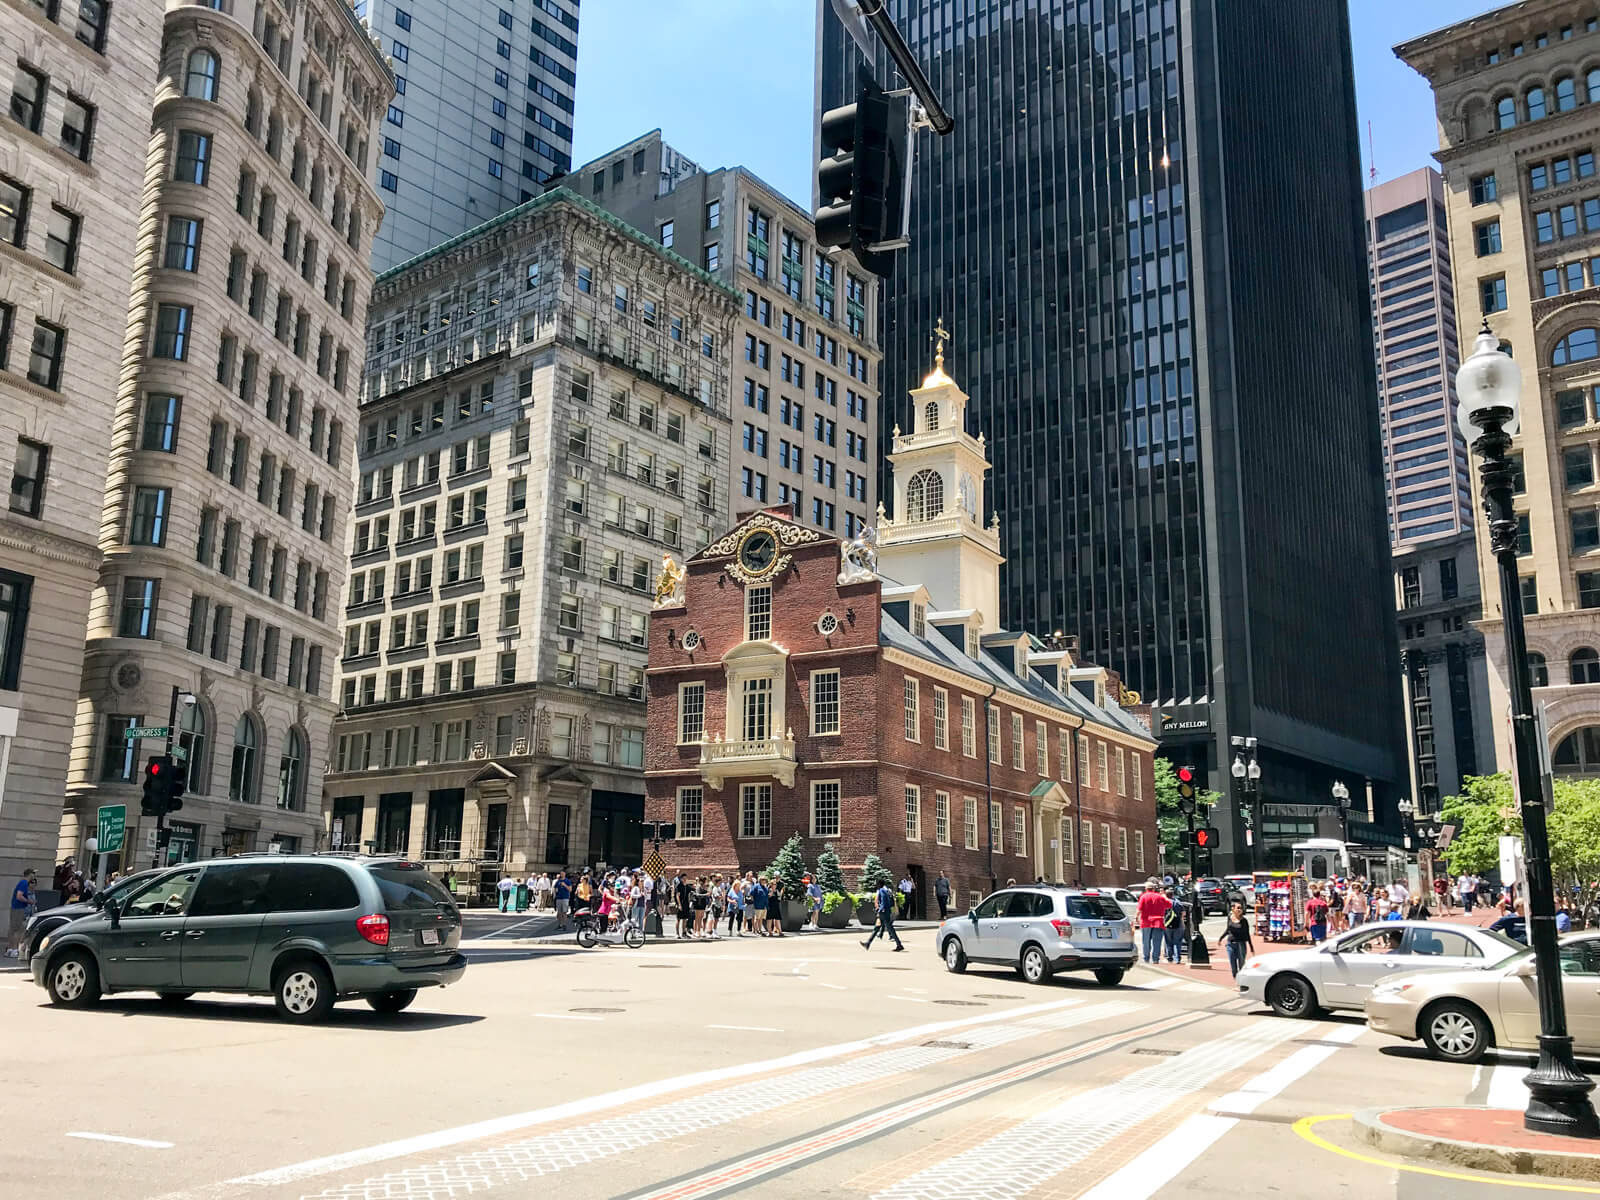 The historic city of Boston as seen from an intersection